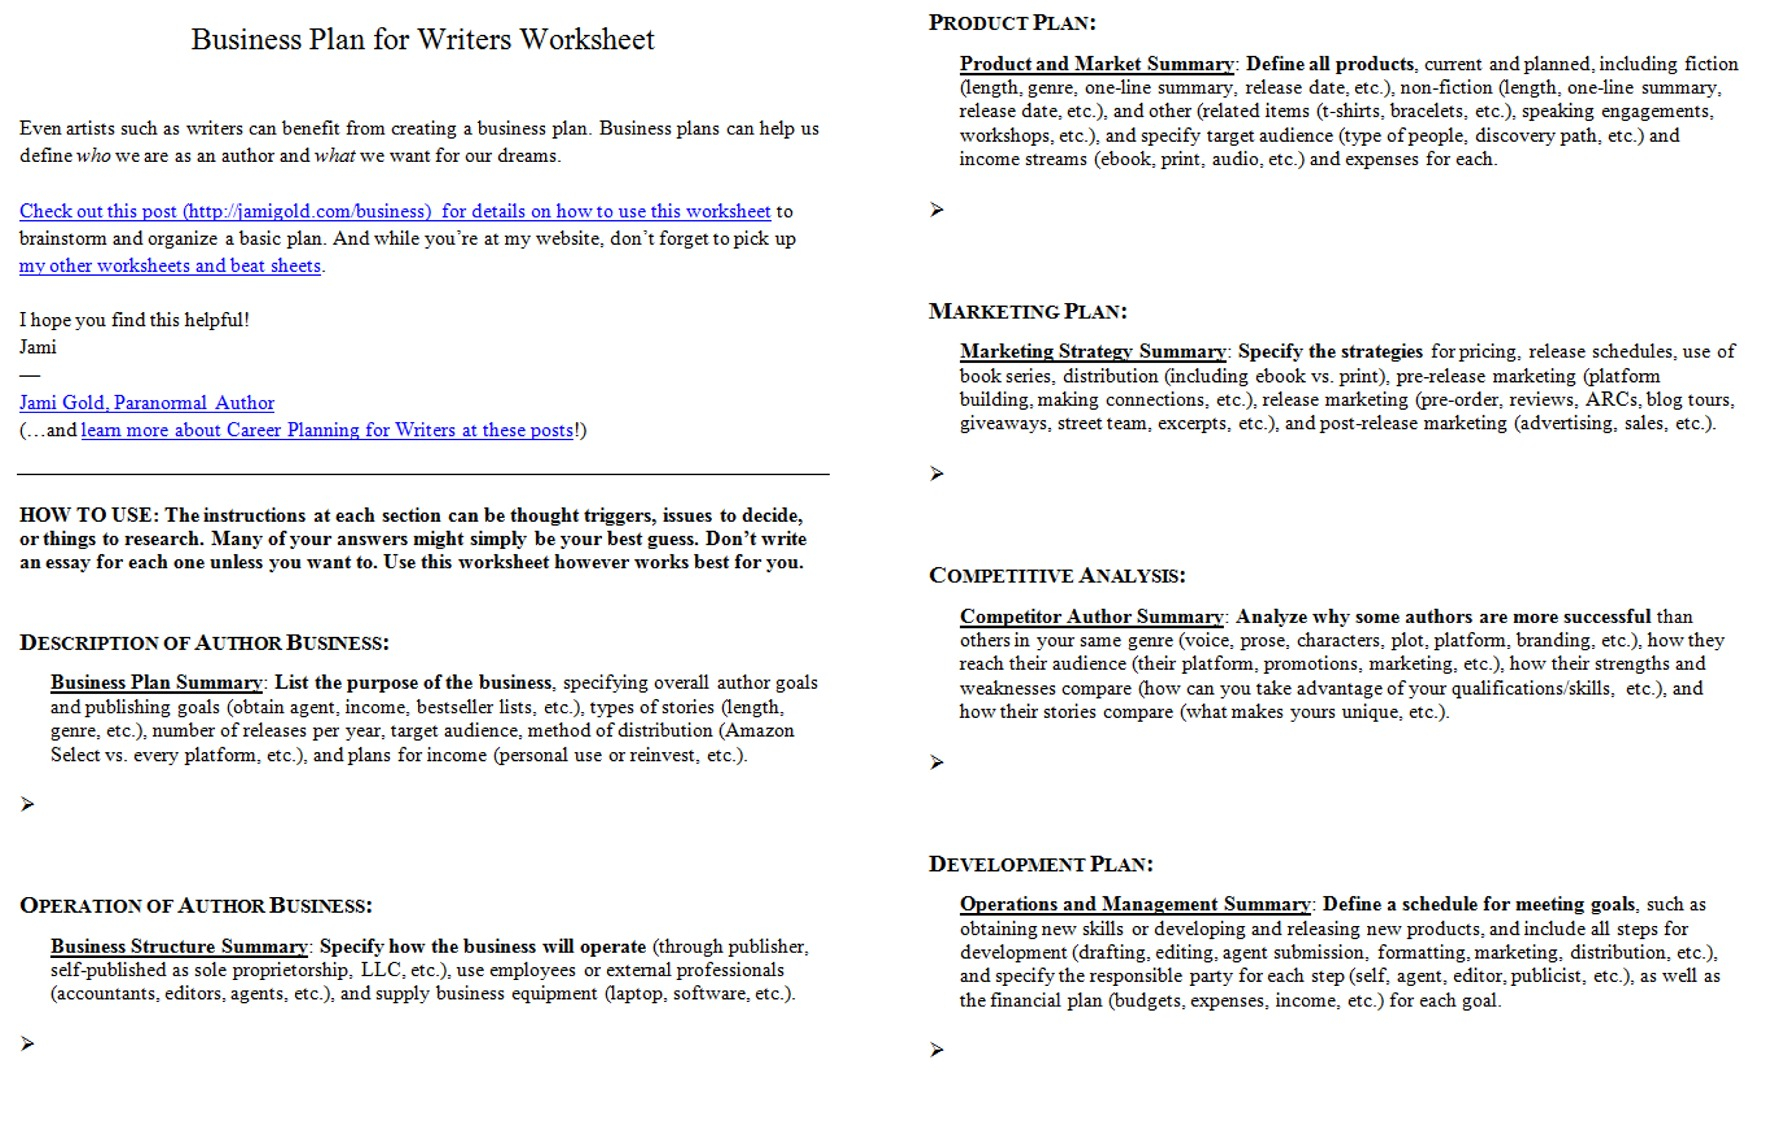 Proatmealus  Marvelous Worksheets For Writers  Jami Gold Paranormal Author With Outstanding Screen Shot Of Both Pages Of The Business Plan For Writers Worksheet With Divine Measuring Cups Worksheets Also Grammar Worksheets Grade  In Addition Multiplication Worksheets Timed And Create A Fill In The Blank Worksheet As Well As Easy  Step Equations Worksheet Additionally Measuring With Cubes Worksheet From Jamigoldcom With Proatmealus  Outstanding Worksheets For Writers  Jami Gold Paranormal Author With Divine Screen Shot Of Both Pages Of The Business Plan For Writers Worksheet And Marvelous Measuring Cups Worksheets Also Grammar Worksheets Grade  In Addition Multiplication Worksheets Timed From Jamigoldcom